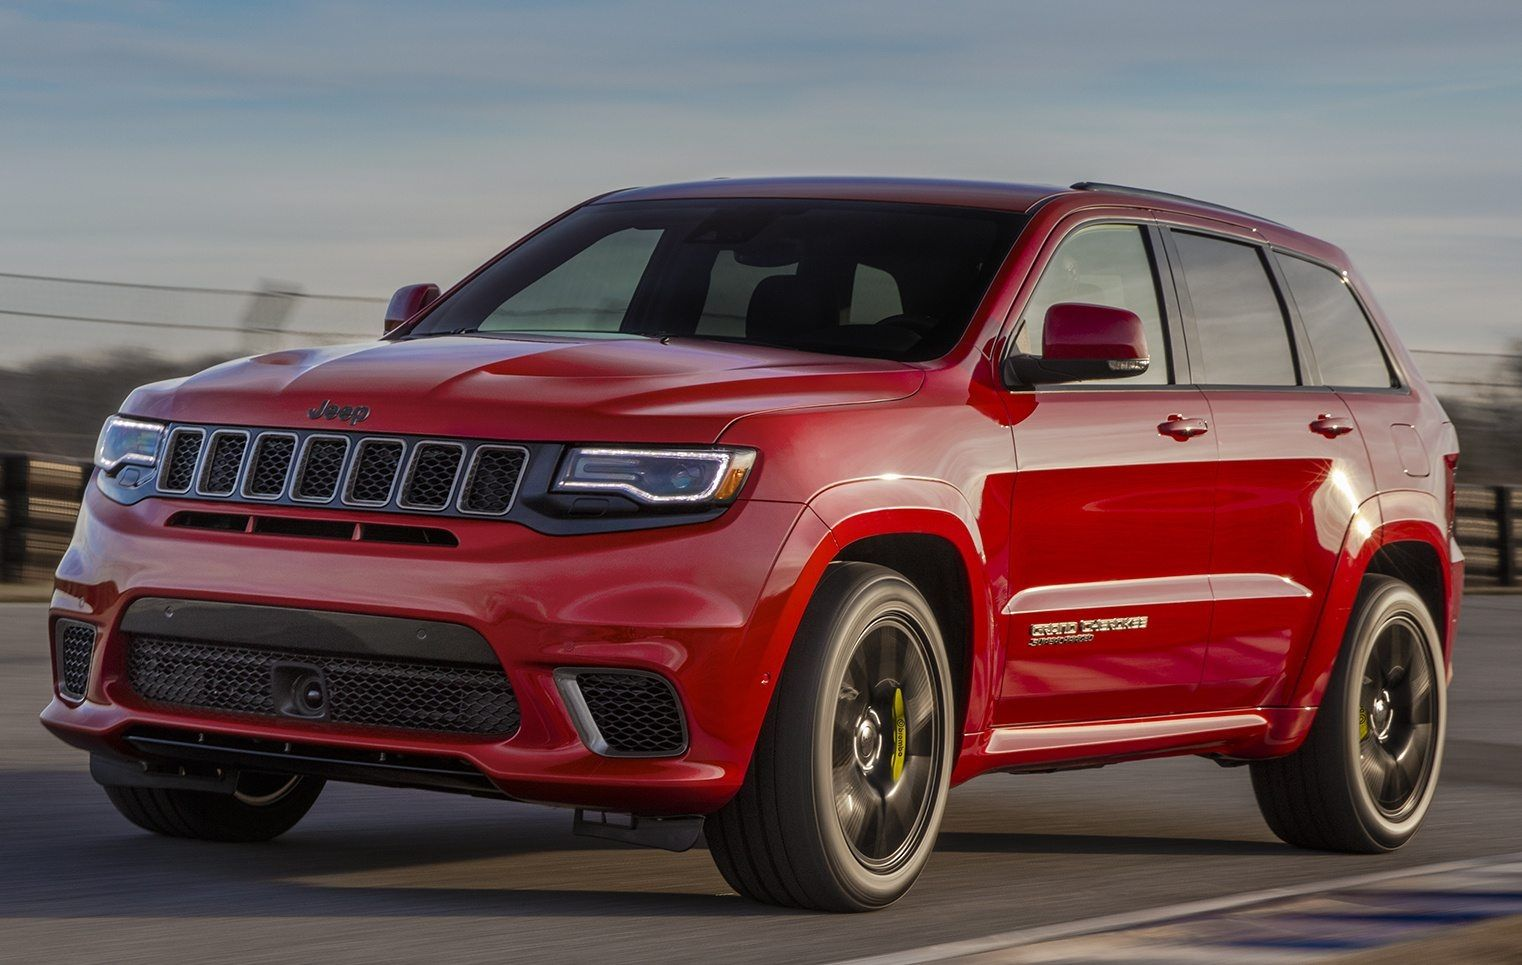 2018 Jeep Grand Cherokee Srt Price Jeep Grand Cherokee Diesel Jeep Grand Cherokee New Cars